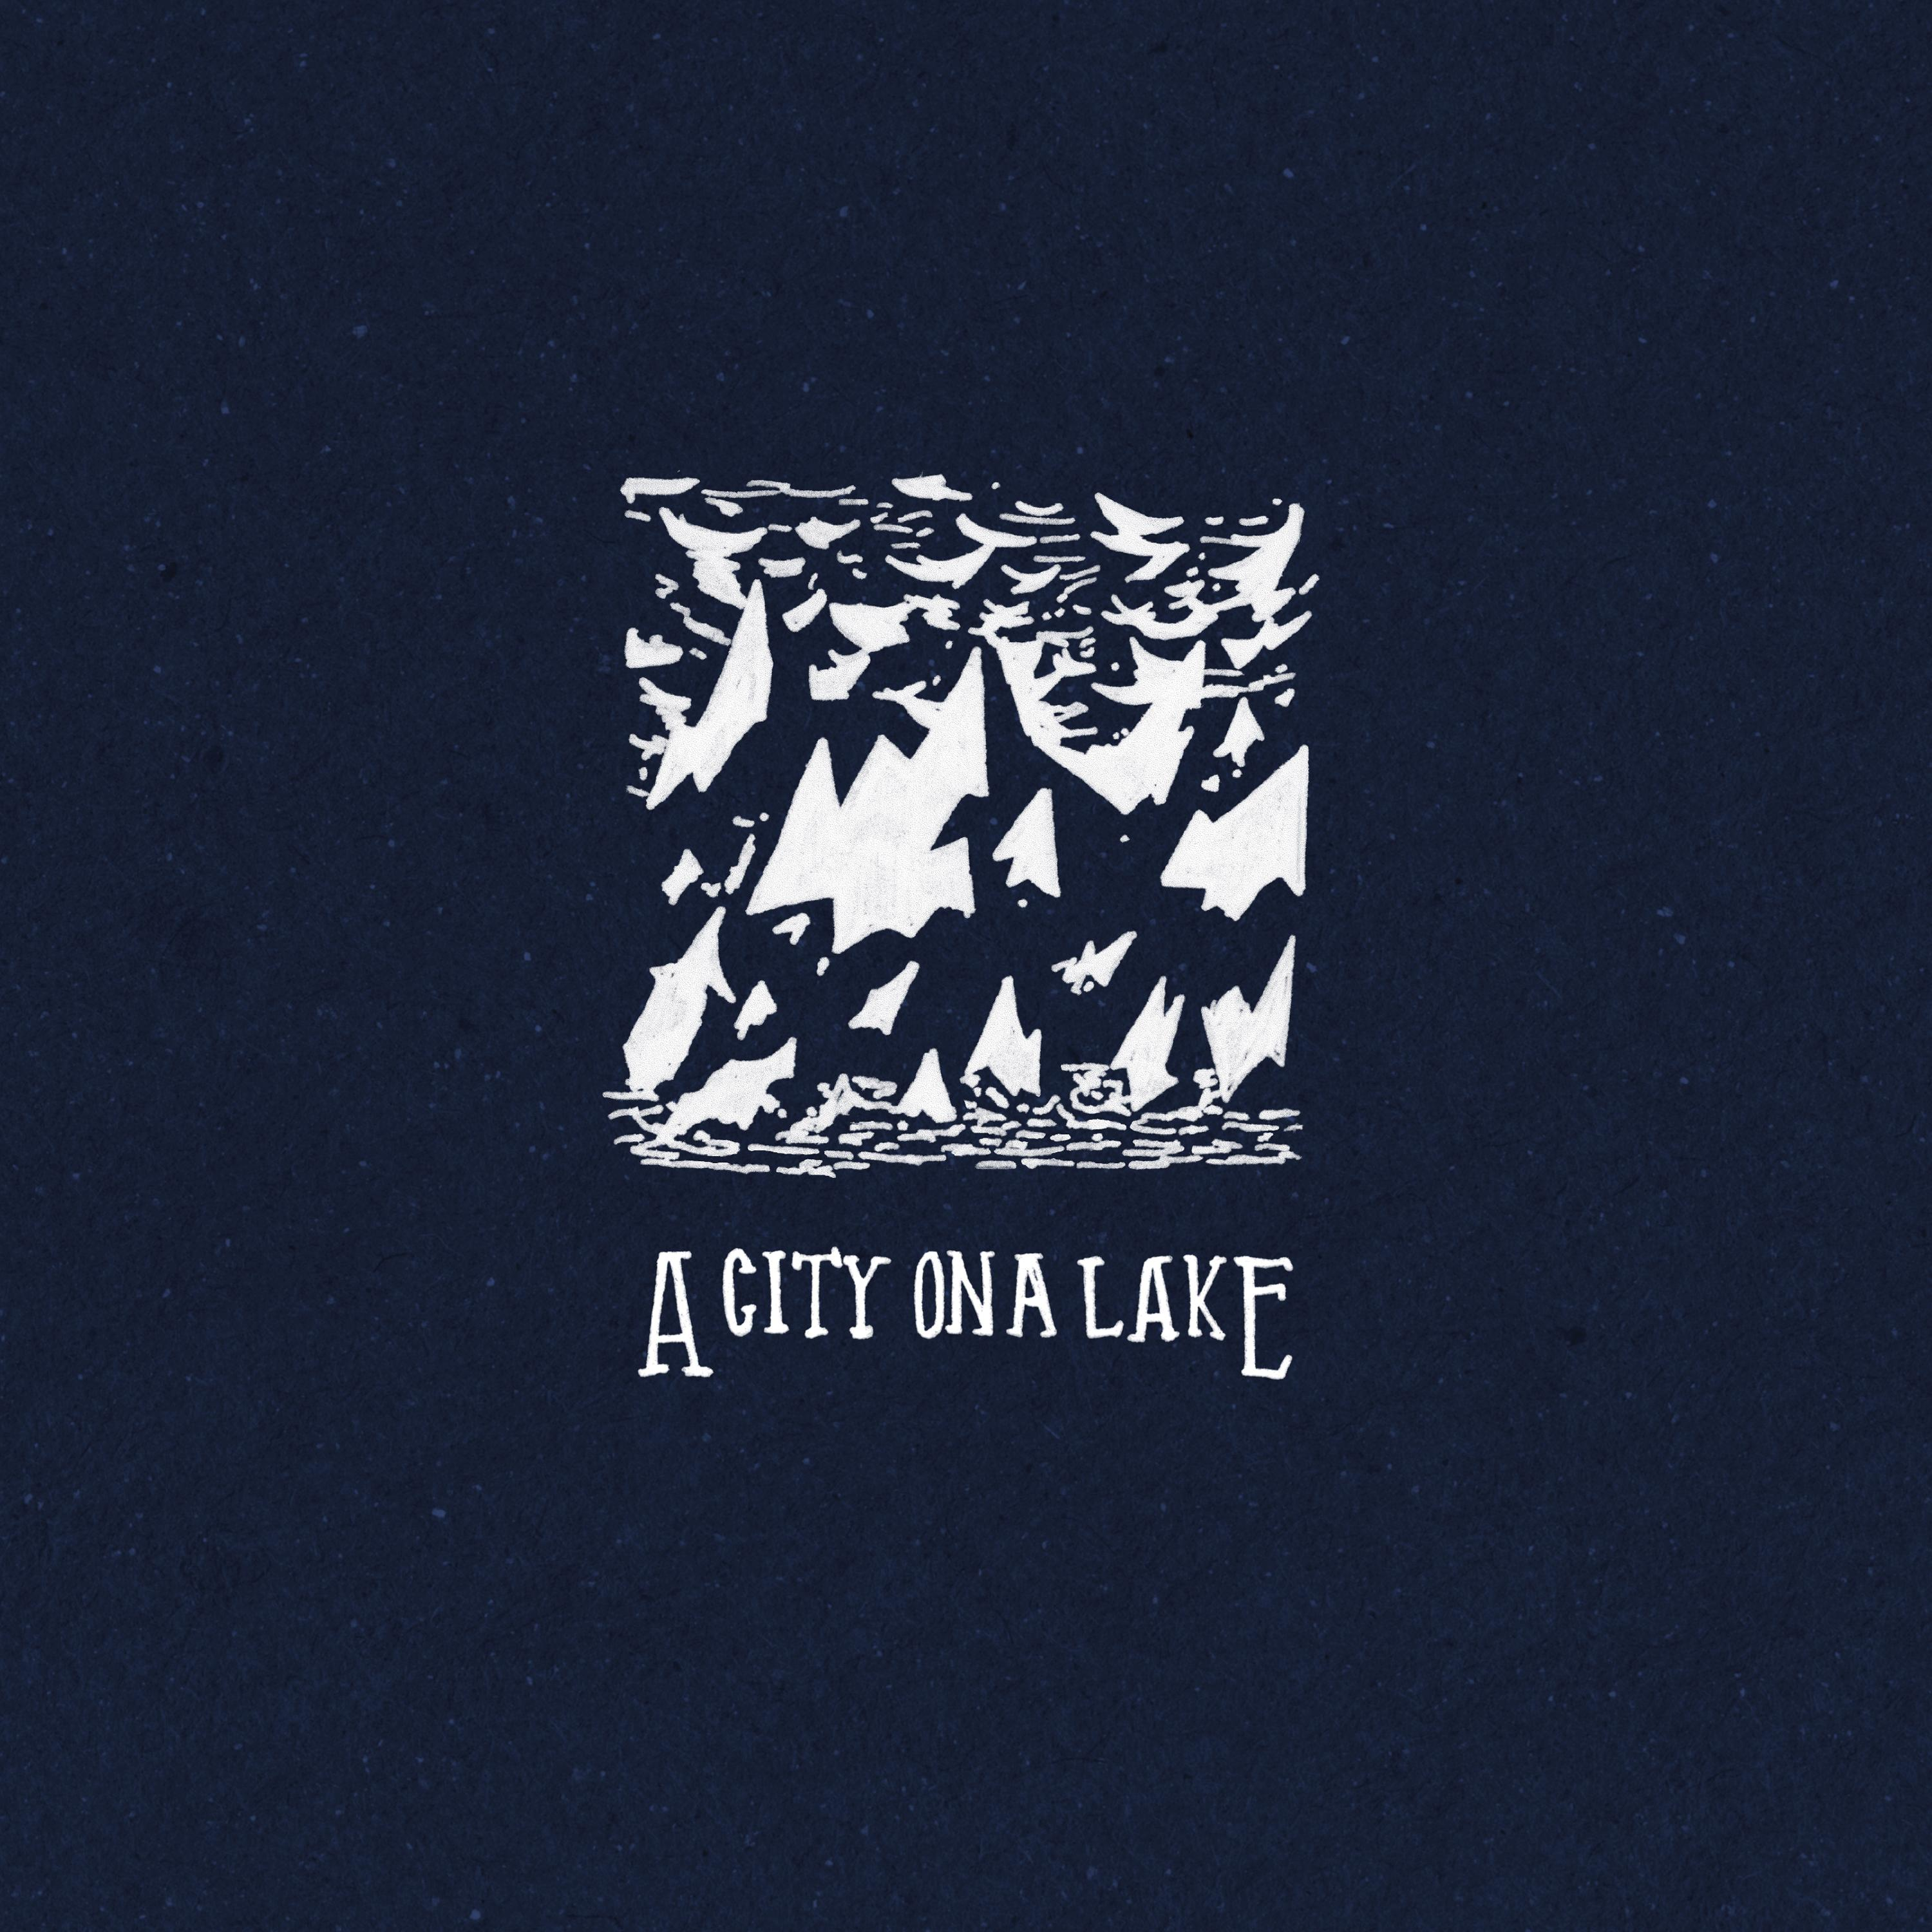 A City On a Lake